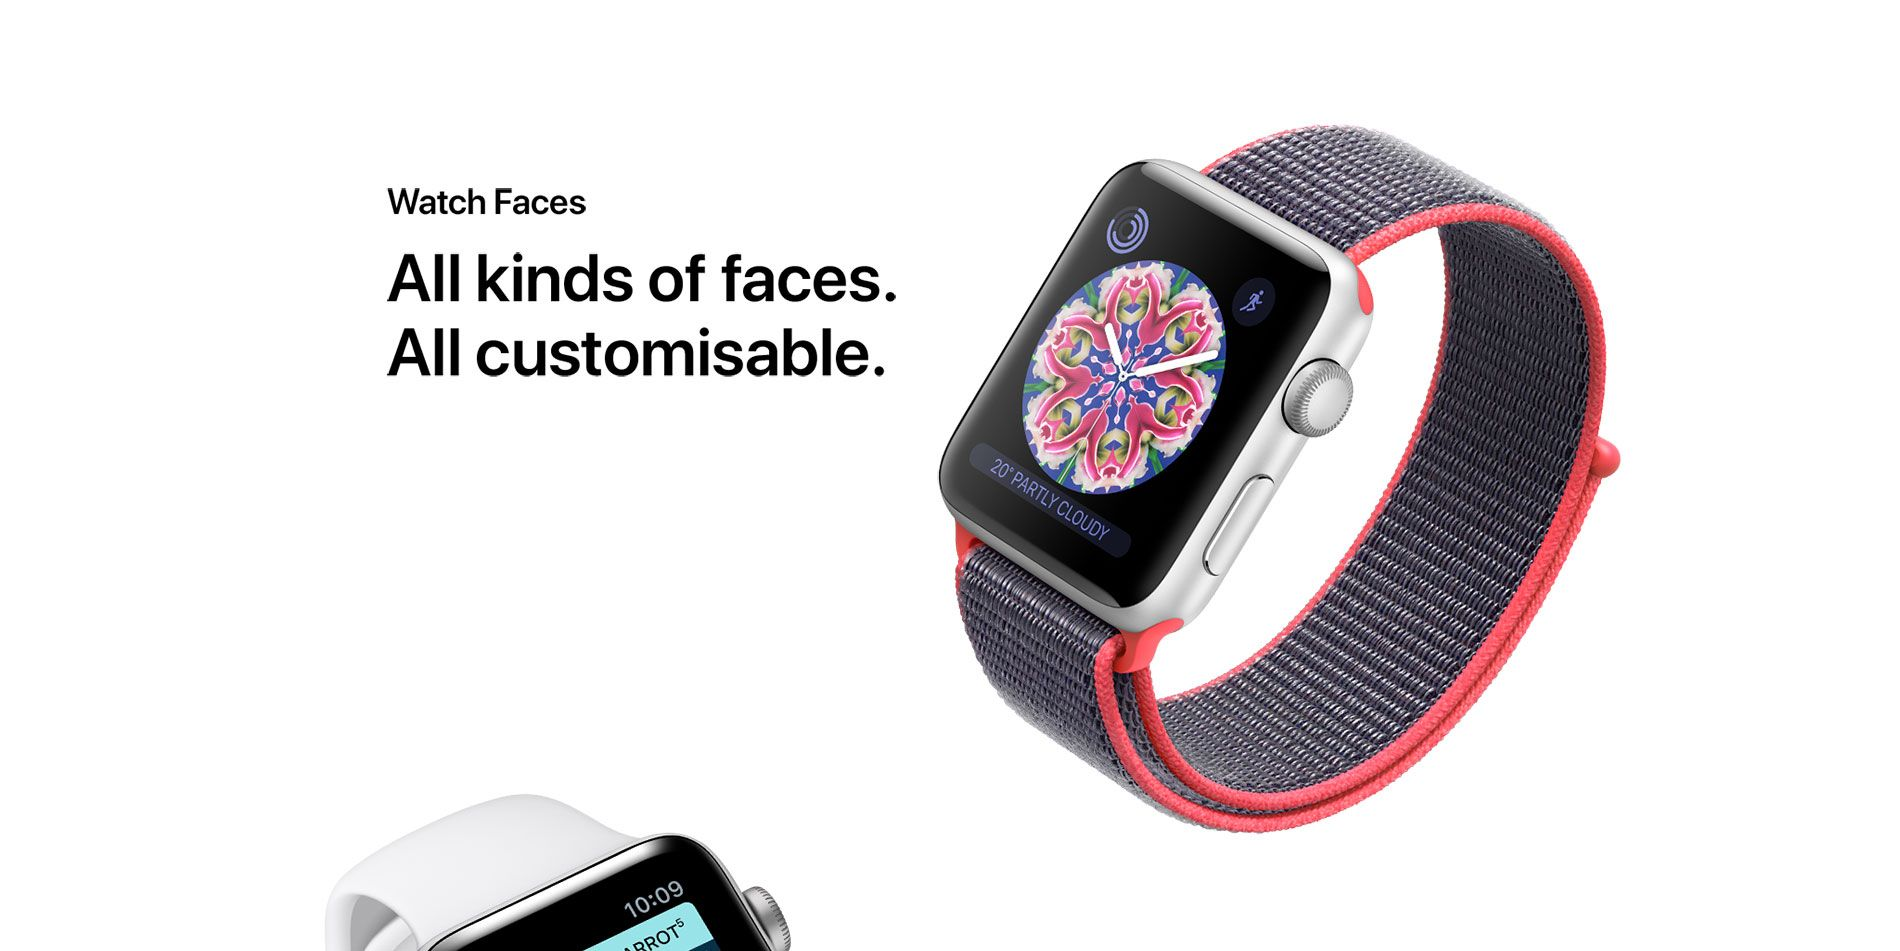 Watch Faces - All kinds of faces. All customisable.